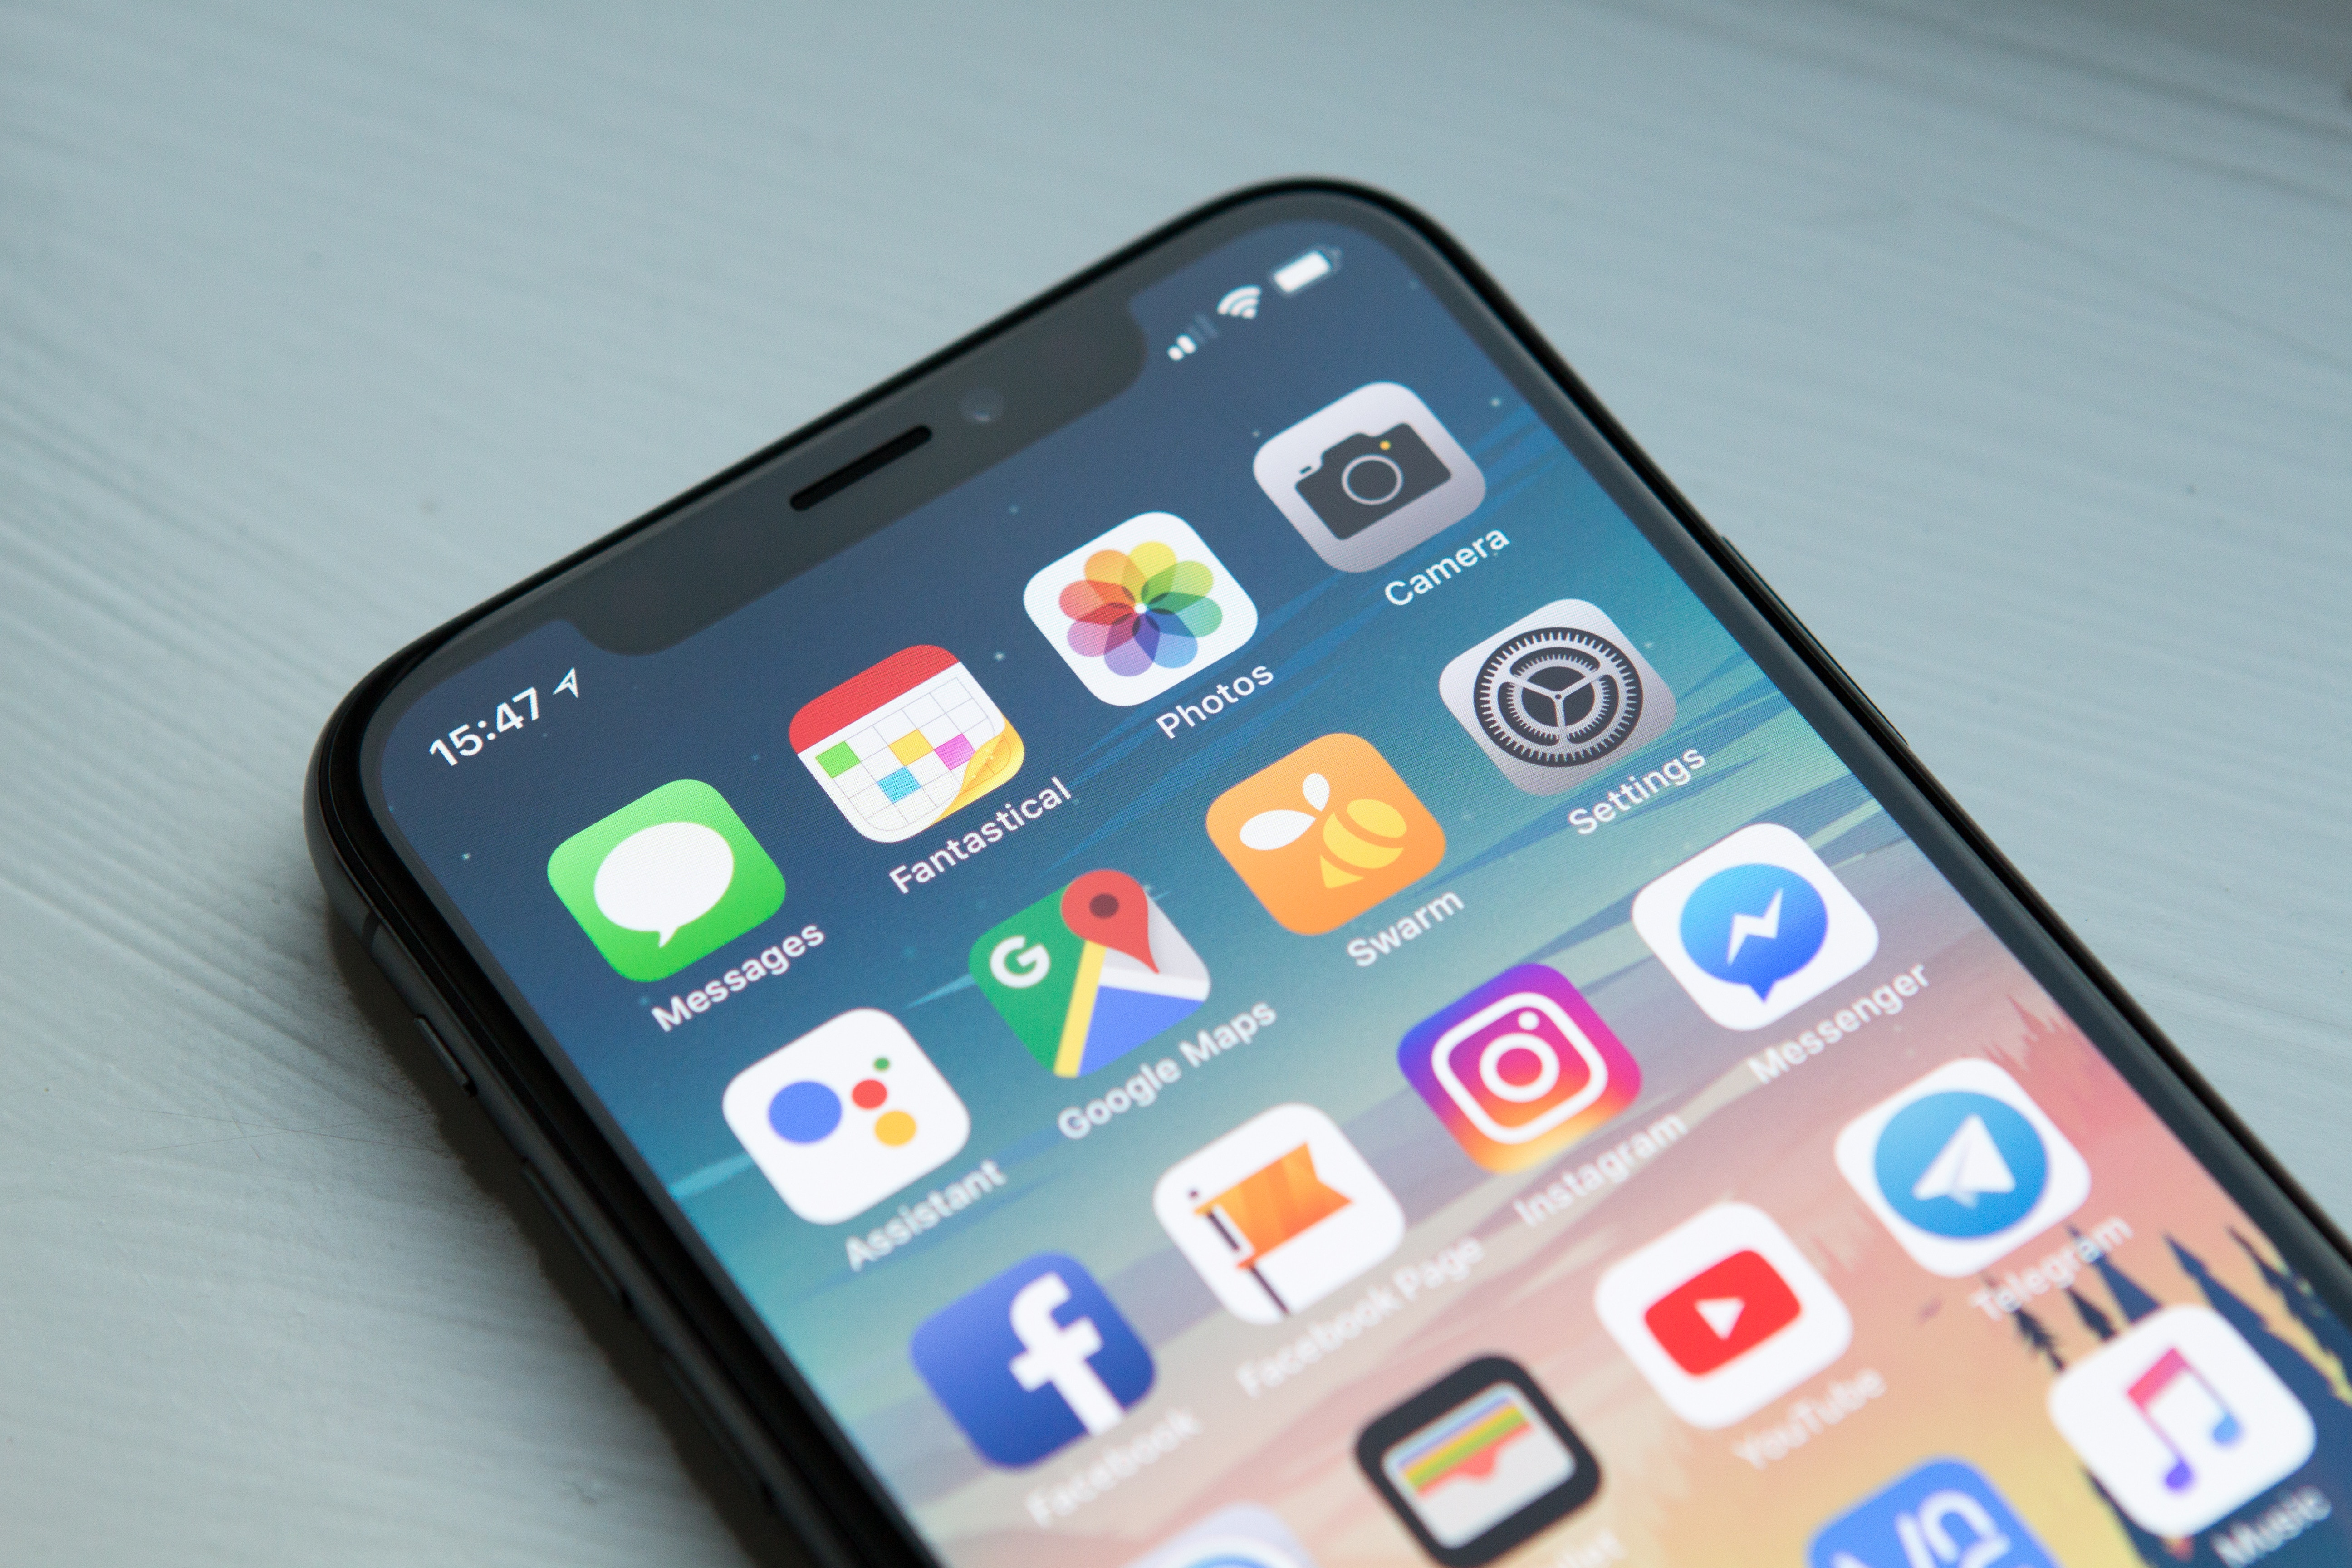 iPhone X with apps on the main screen